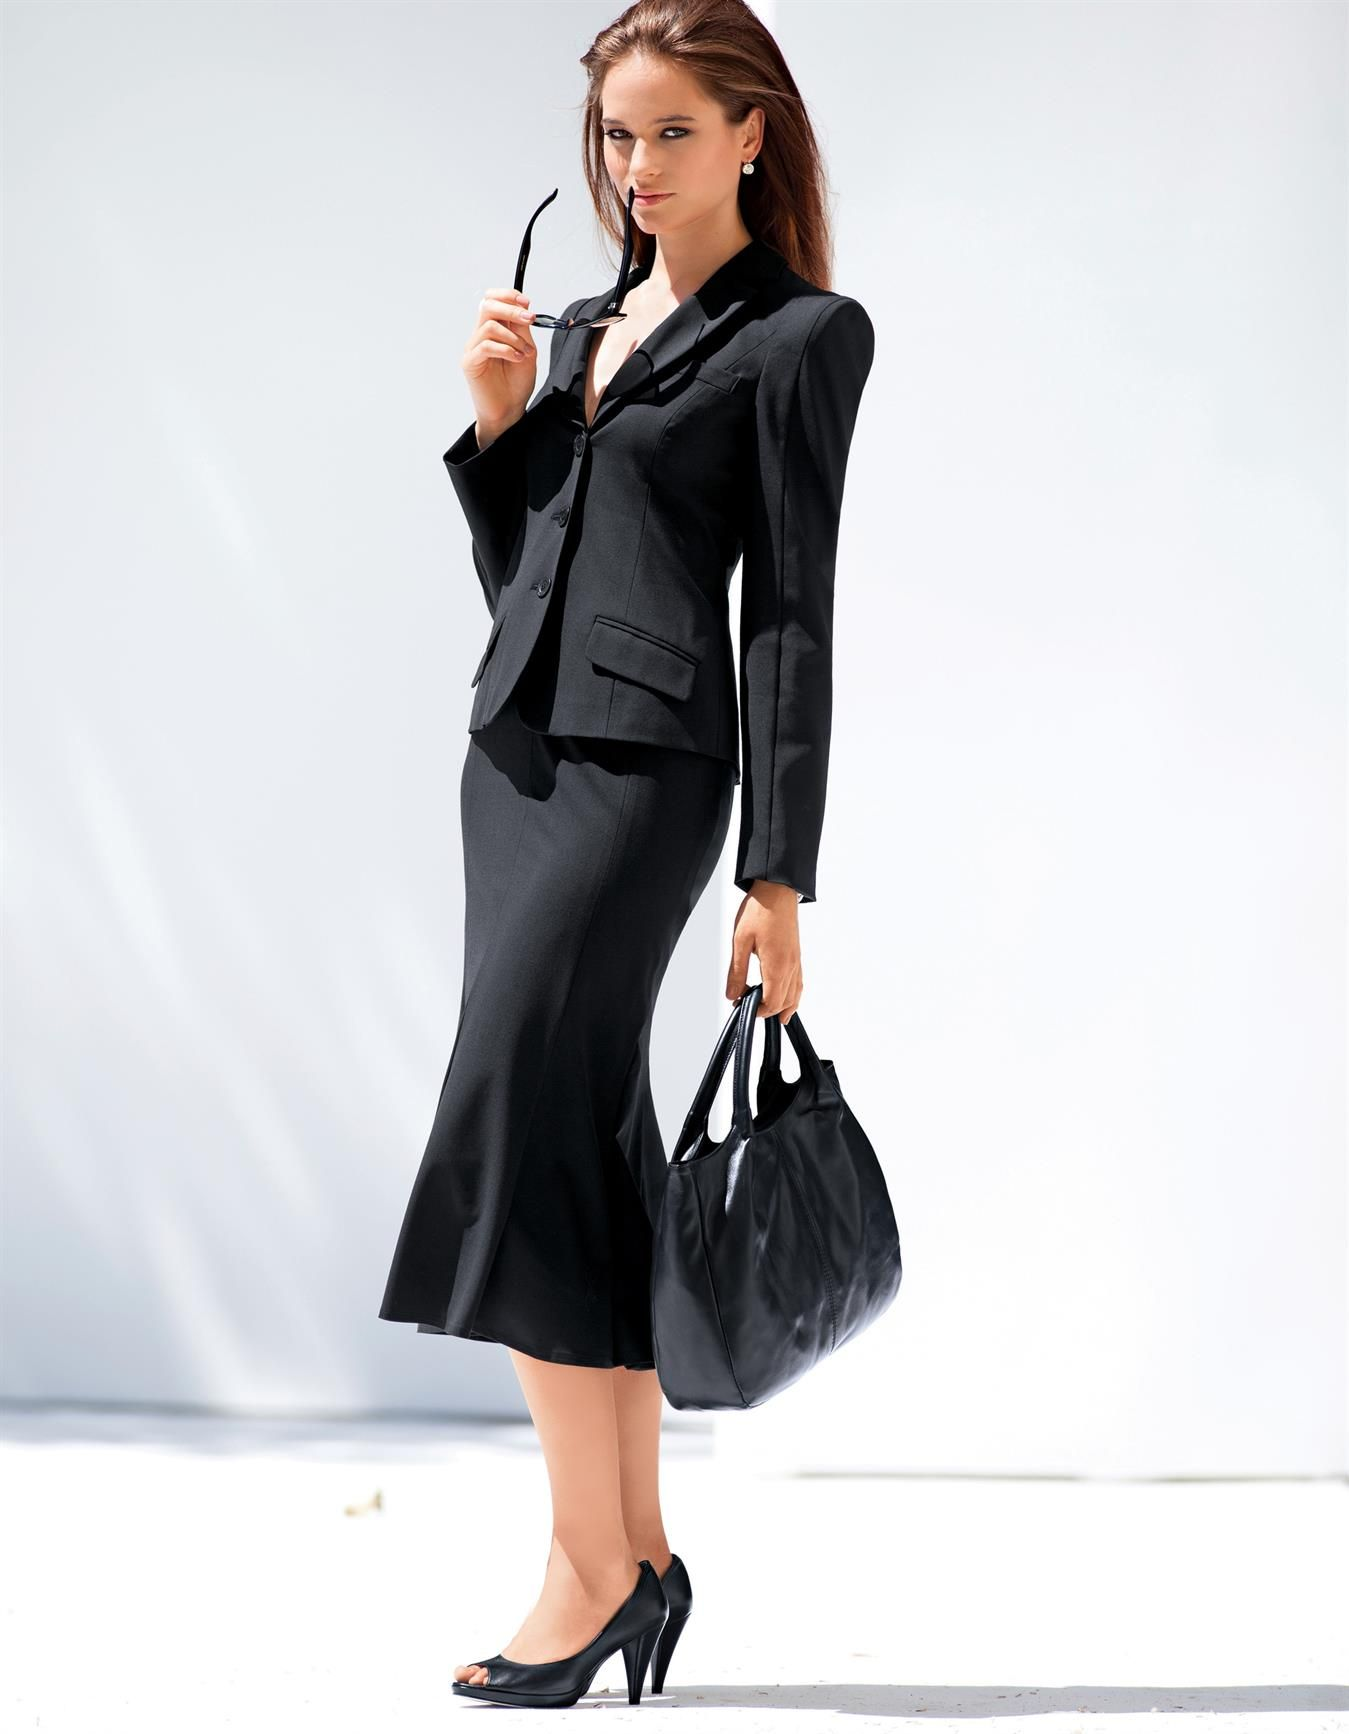 Women's business suits. I could totally see you rocking this 50's look